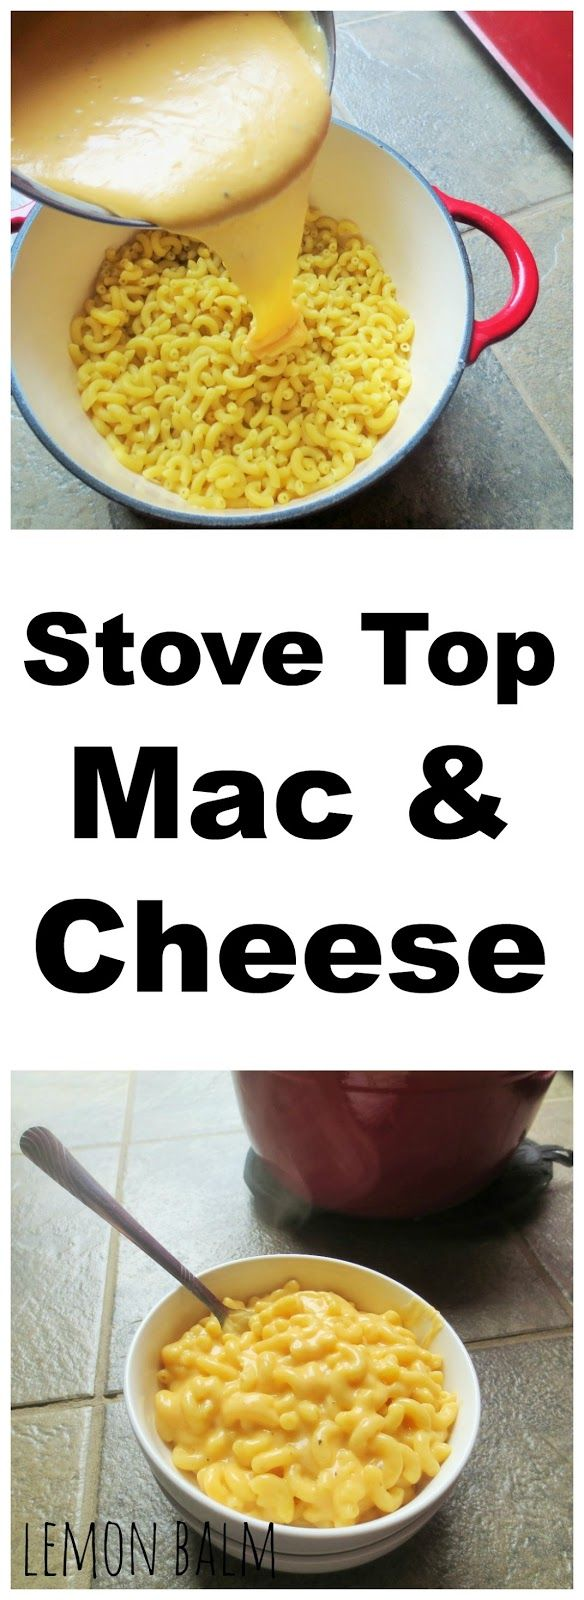 Stove Top Mac & Cheese http://macthelm.blogspot.com/ Quick and easy, this Stove Top Mac & Cheese only needs five ingredients!